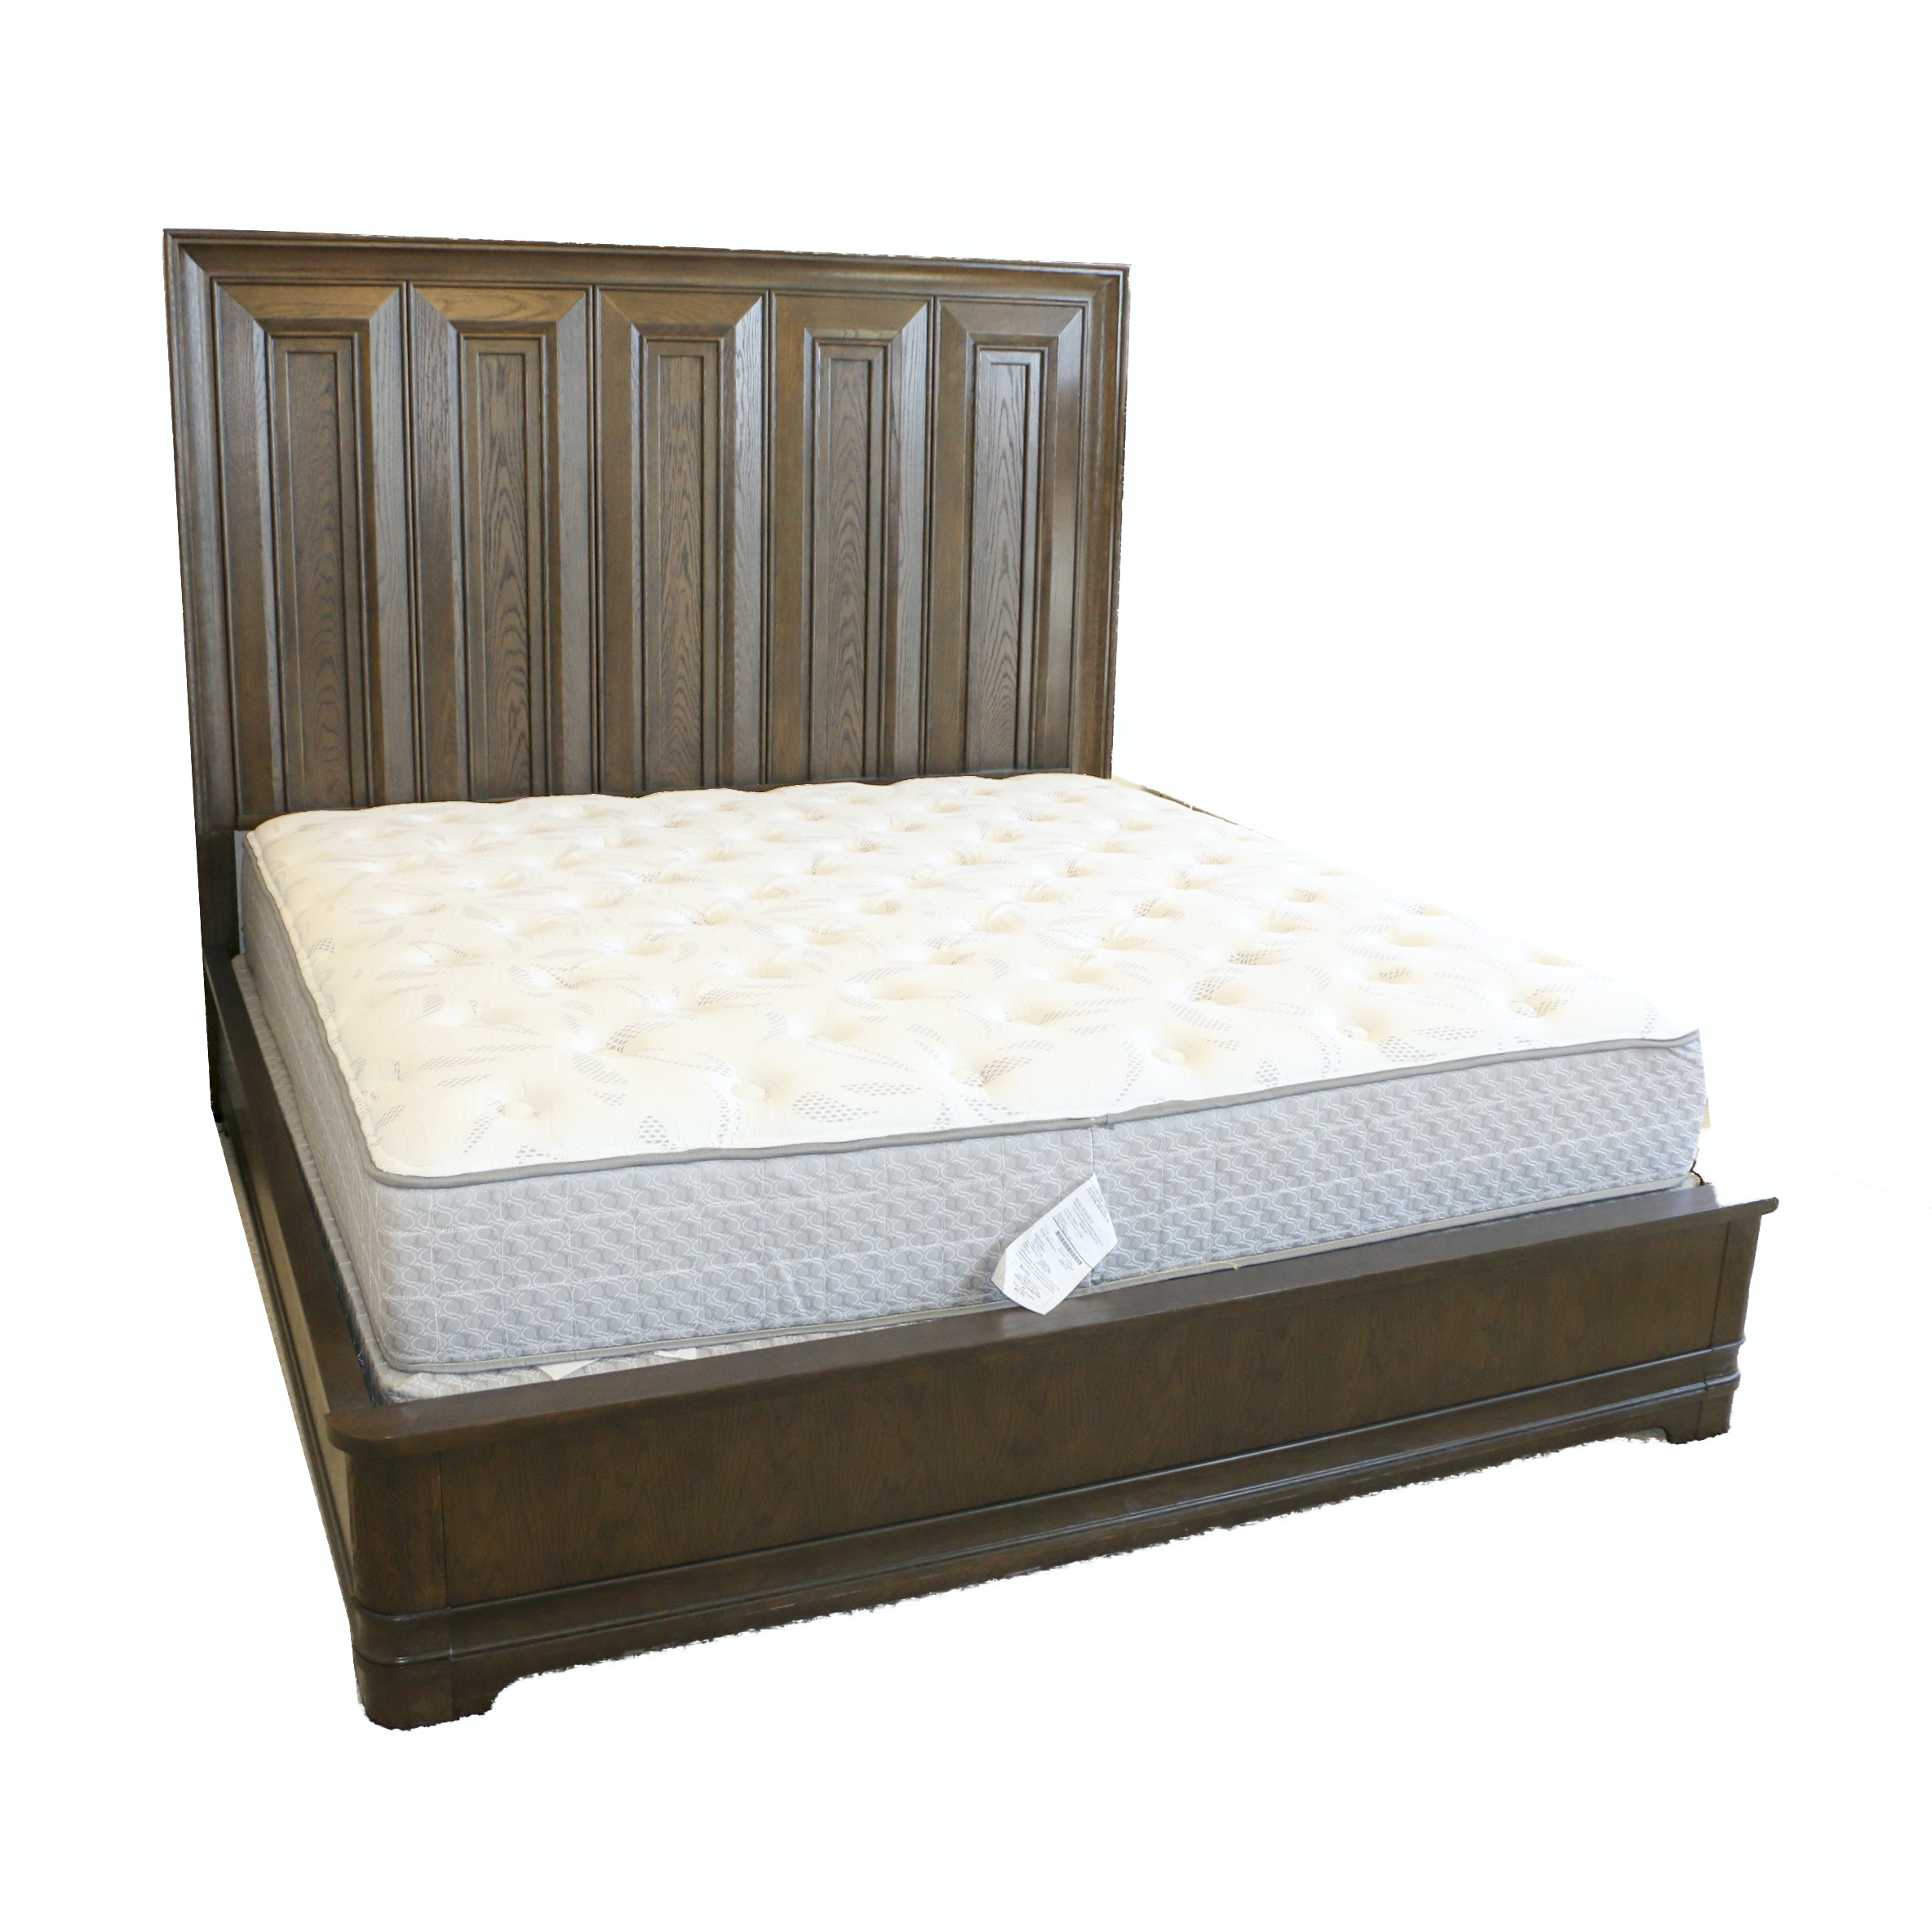 Stained Oak Panel King Size Bed Frame, Late 20th Century